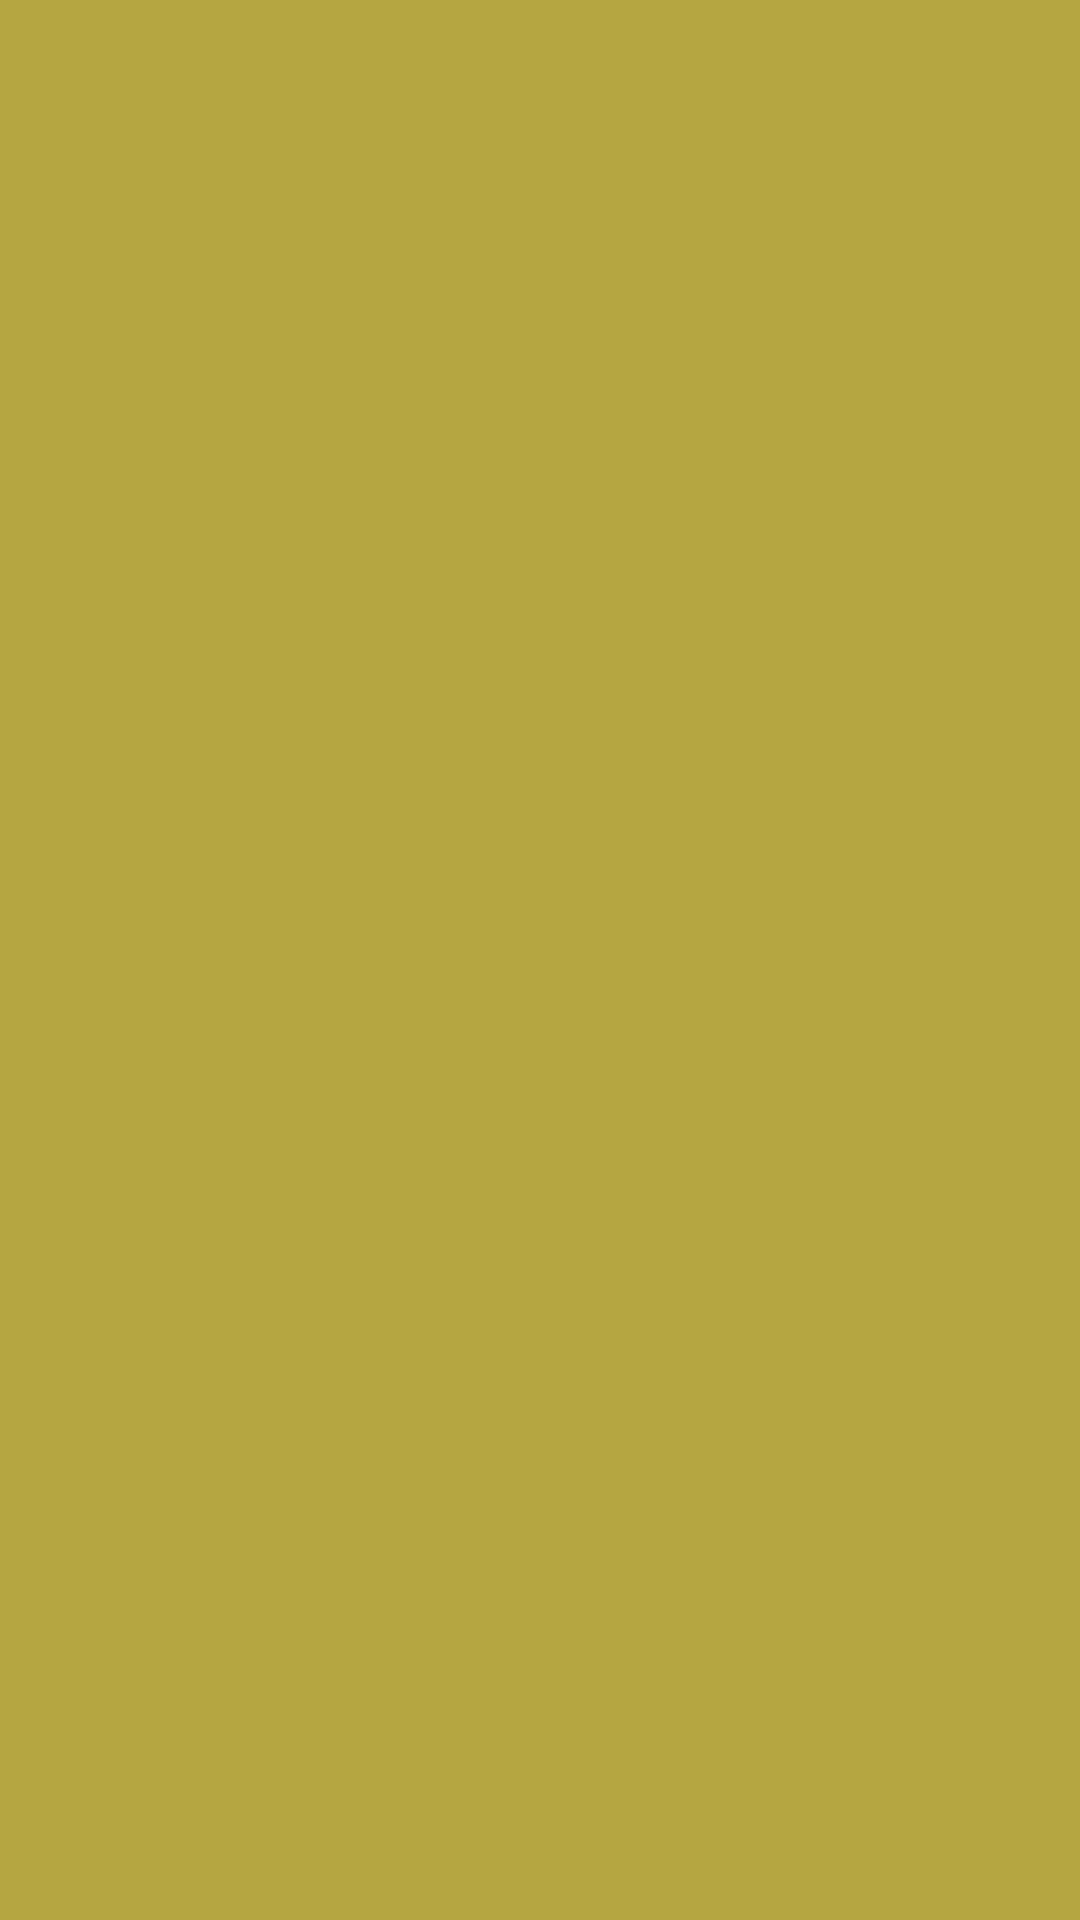 1080x1920 Brass Solid Color Background